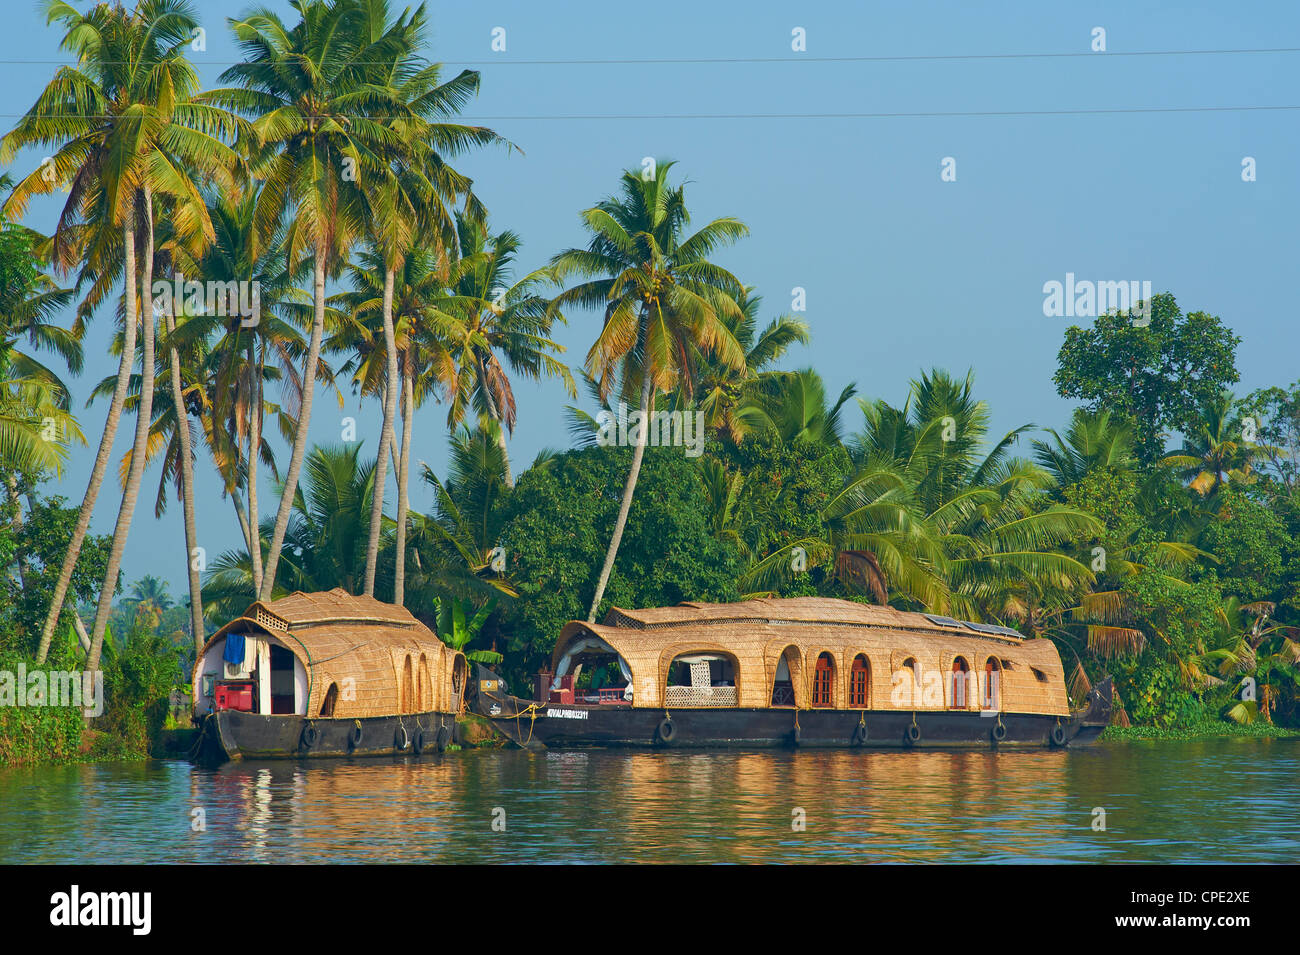 Houseboat for tourists on the backwaters, Allepey, Kerala, India, Asia - Stock Image